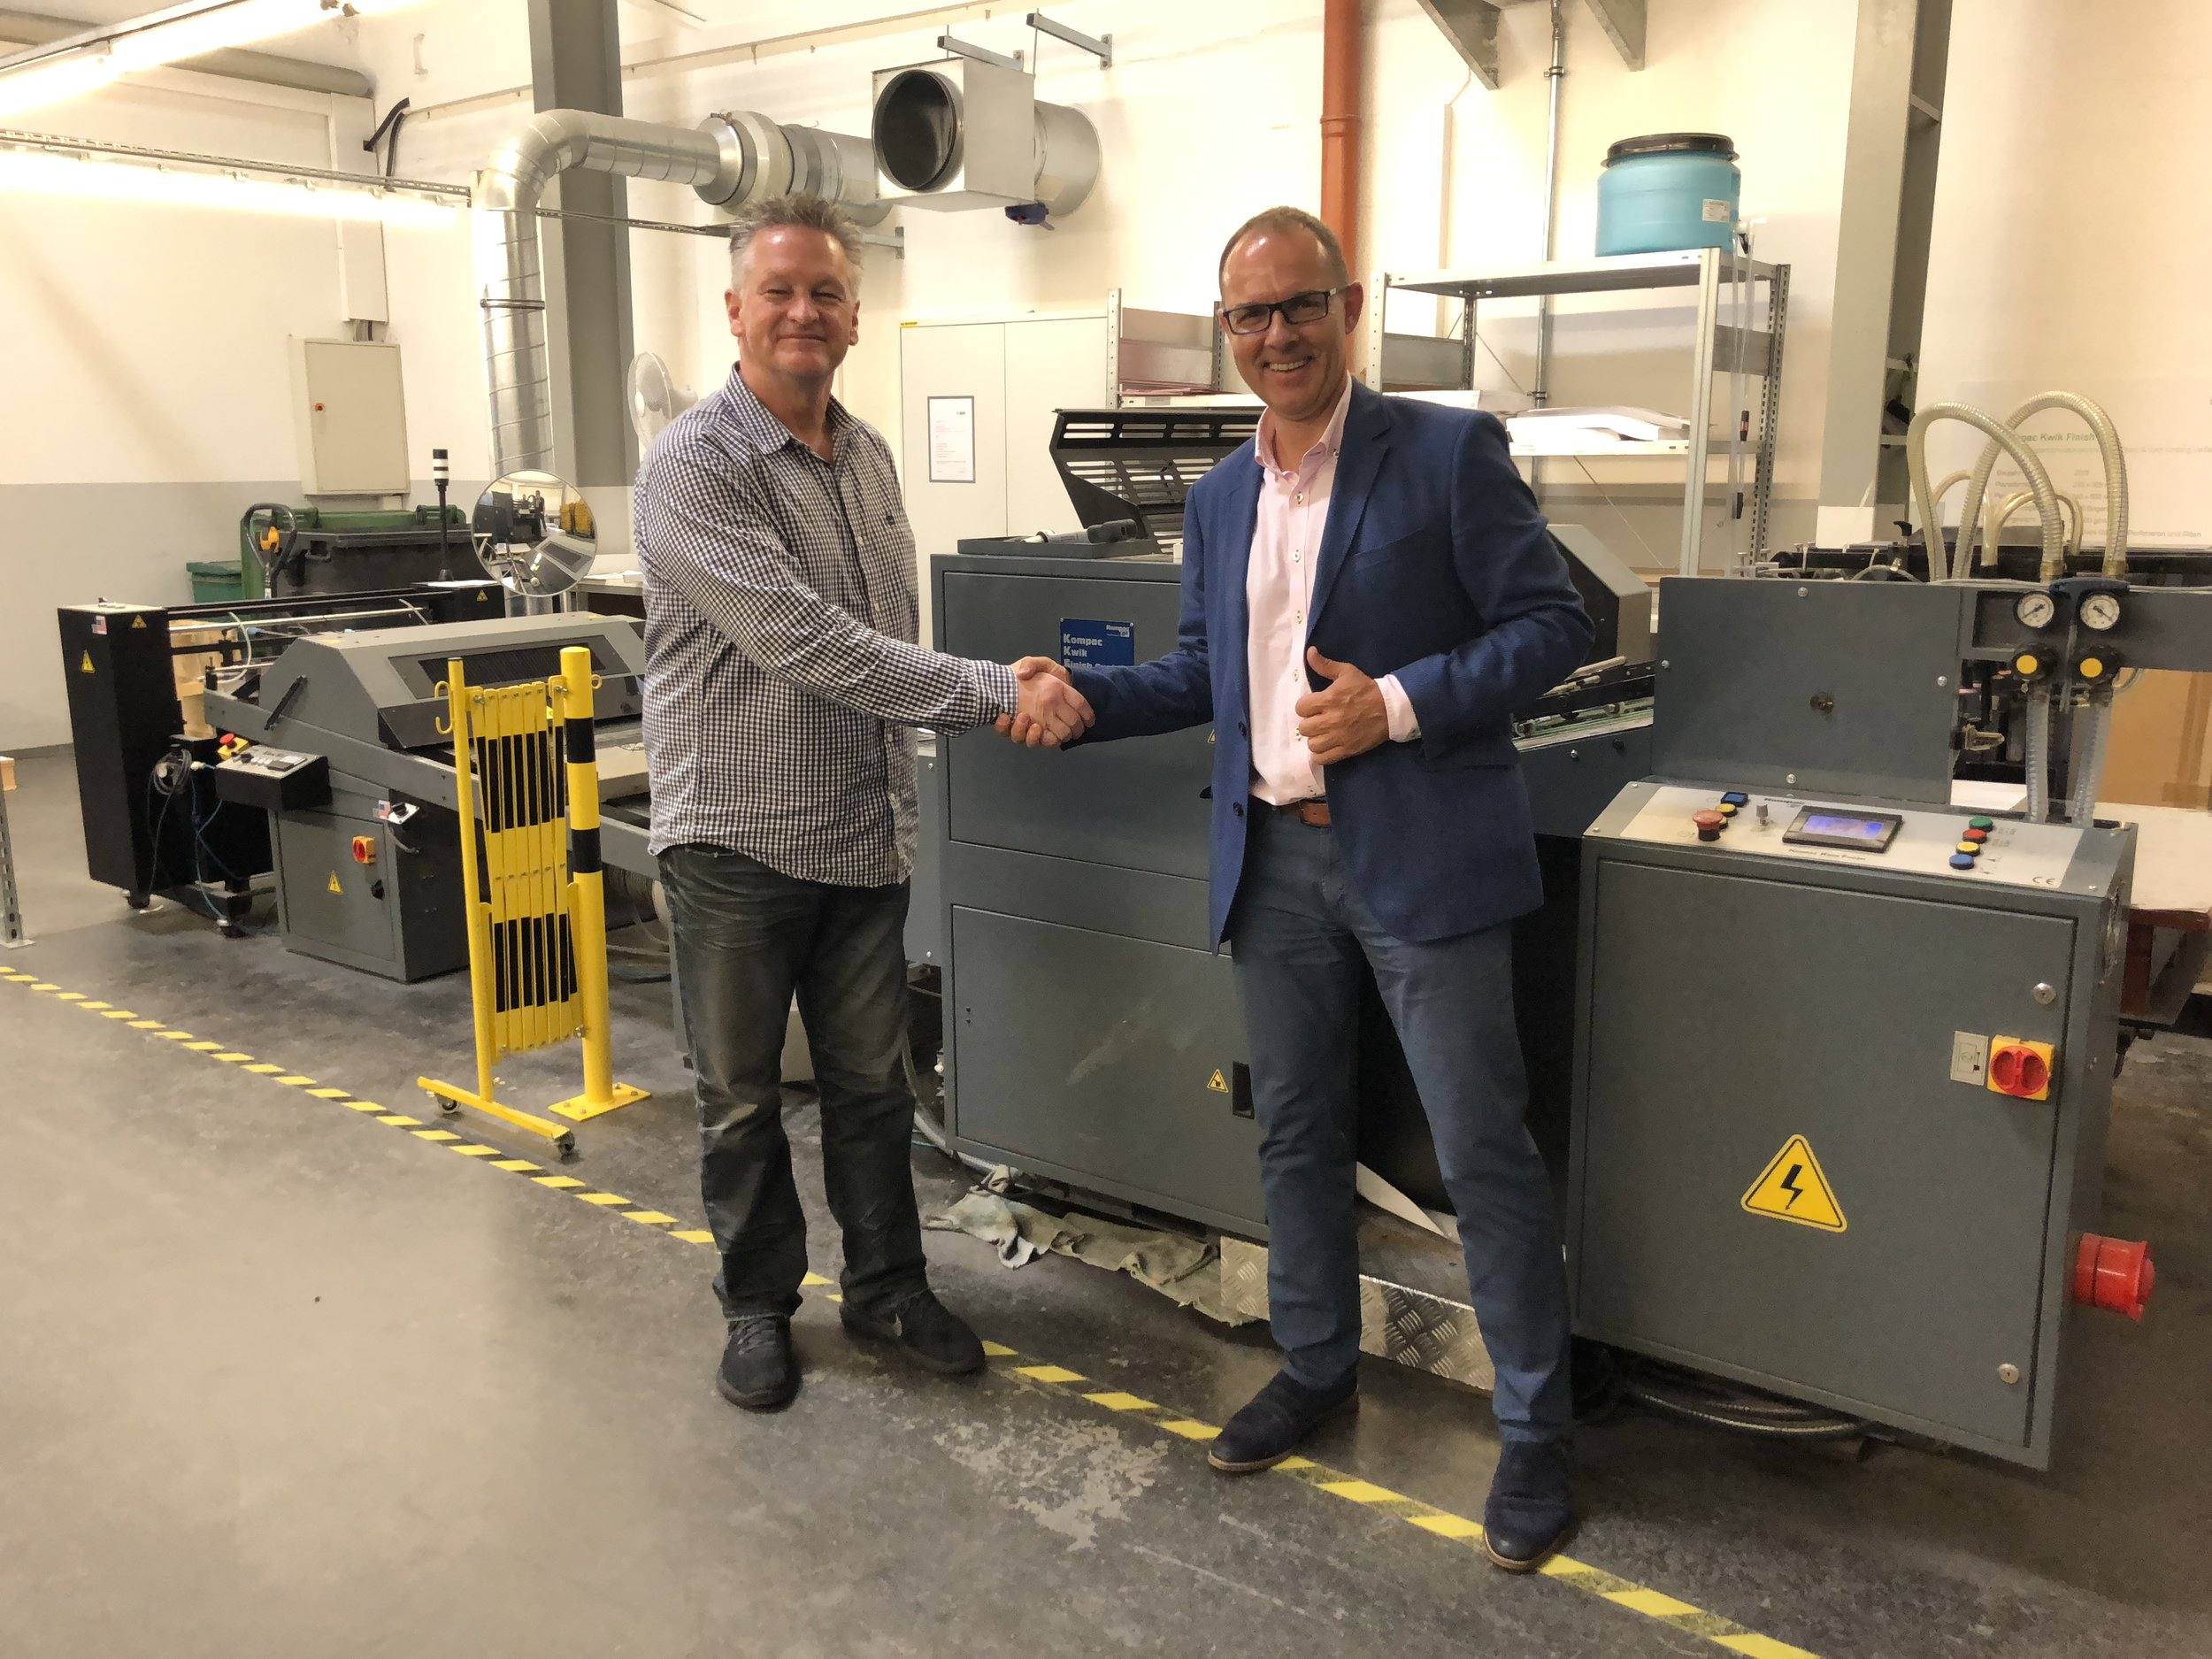 Pictured L to R:  Thomas Hayes, President of Kompac, and Krzysztof Pisera, Business Development Director of Scorpio, standing with a Kwik Finish 32 UV & aqueous coating system.